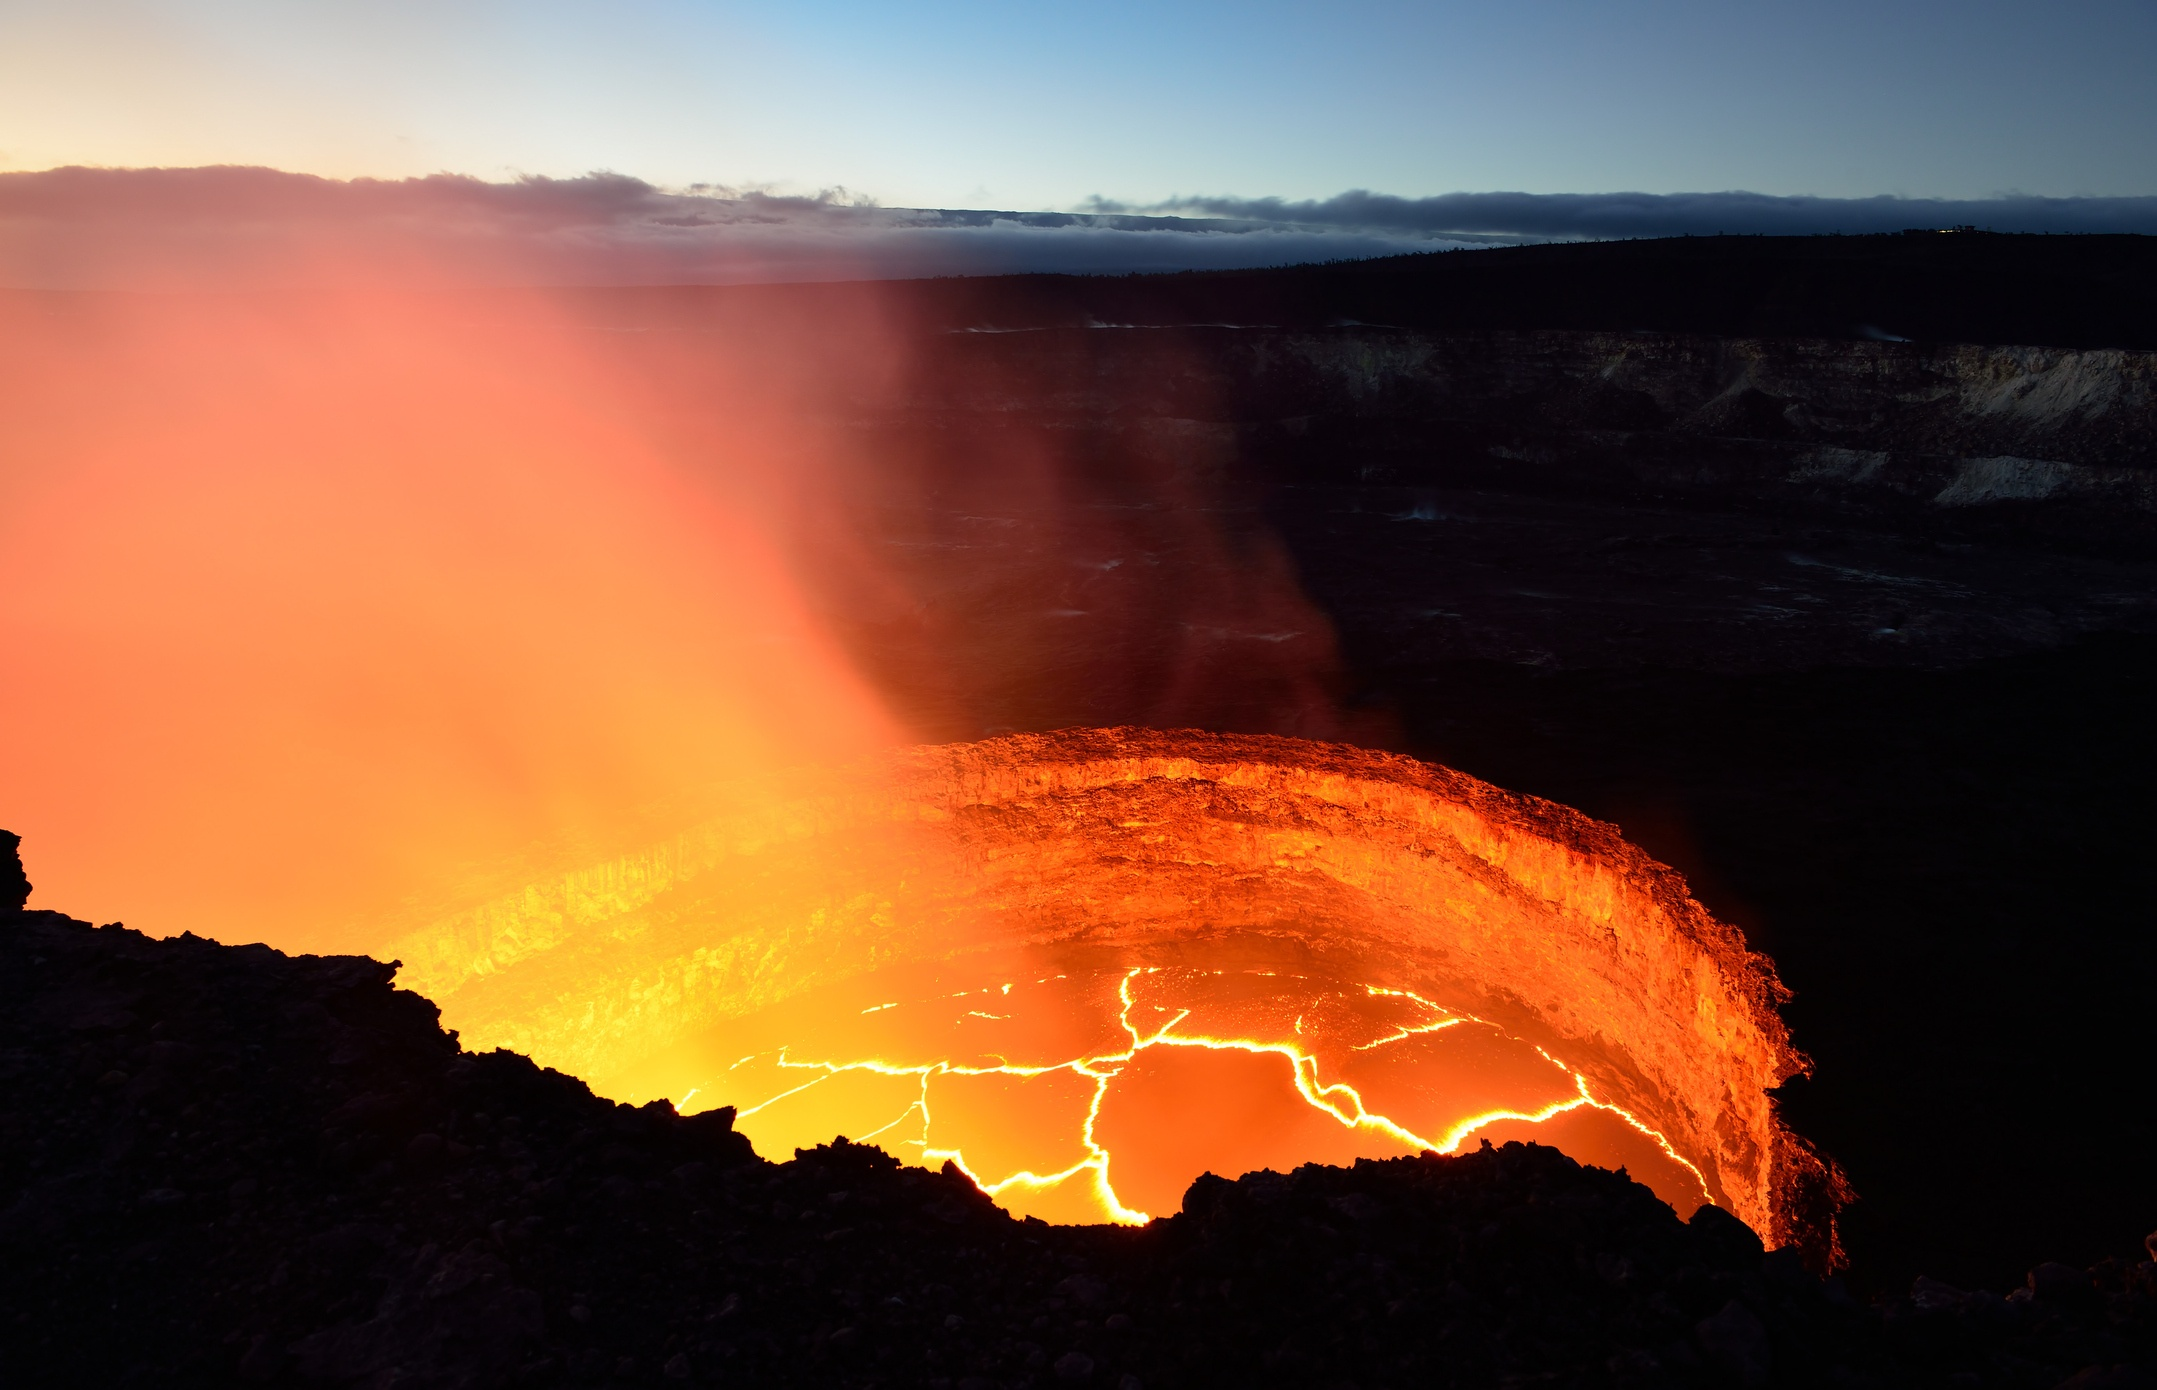 Kilauea volcano inside view of the active volcano with lava flow in Volcano National Park, Big Island of Hawaii